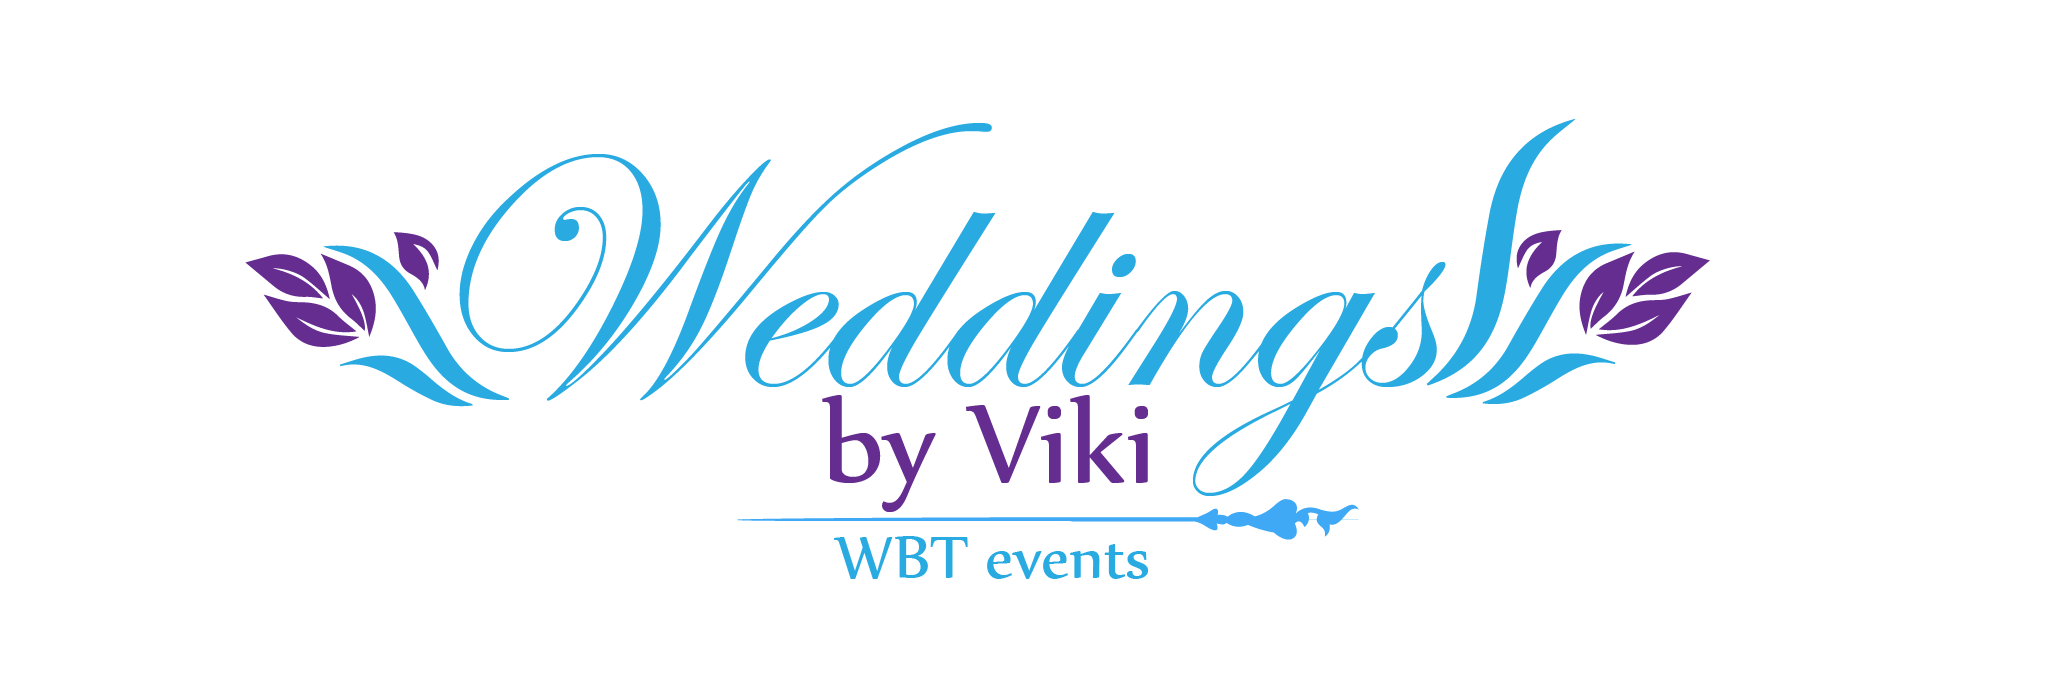 WBT Events 2